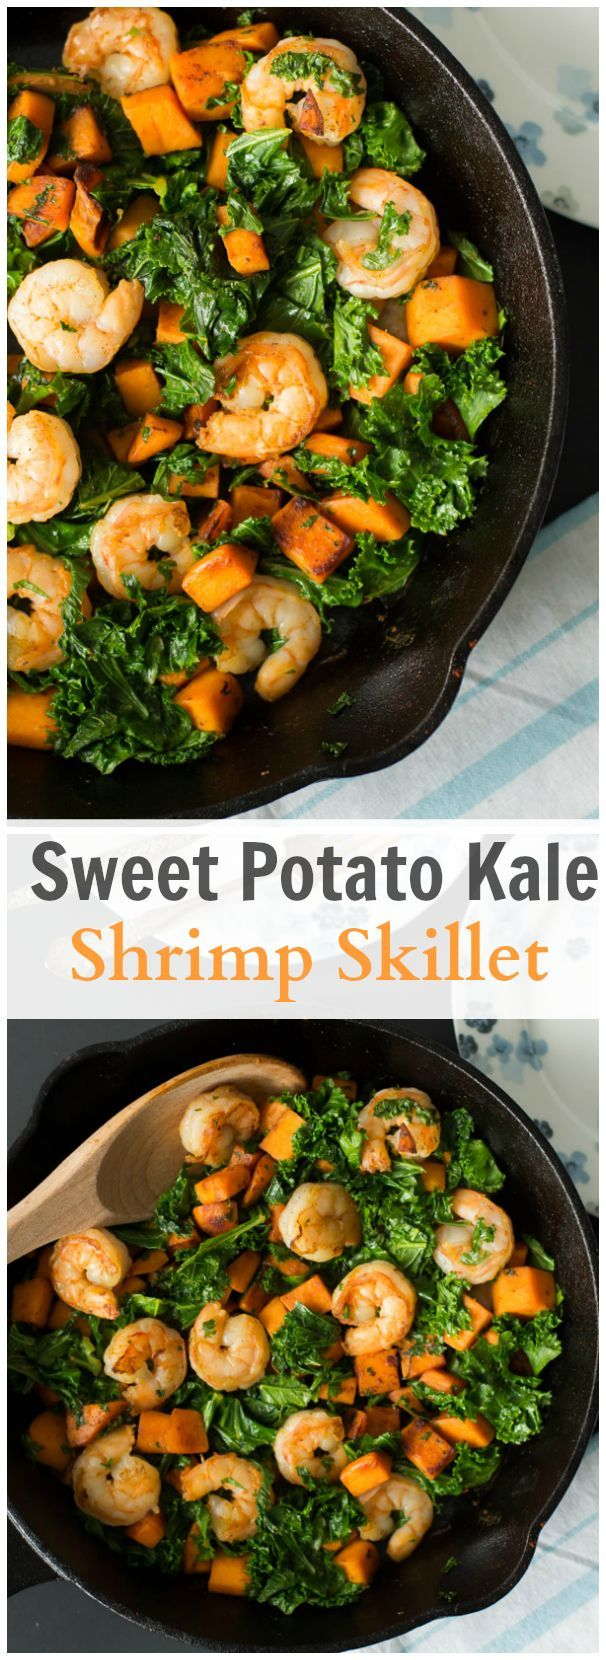 This Sweet Potato, Kale and Shrimp Skillet is Paleo, gluten-free and healthy…